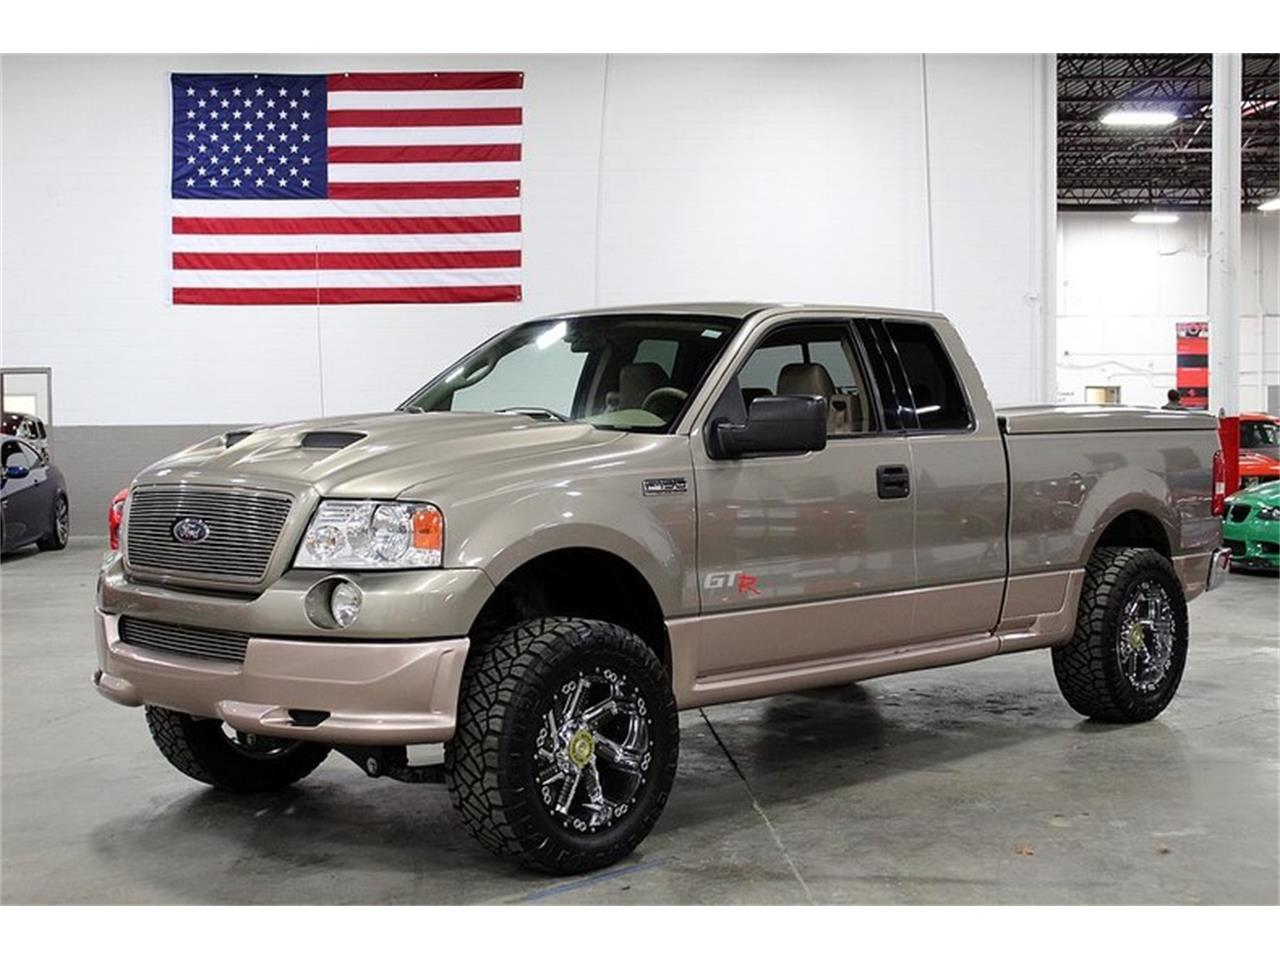 Large picture of 04 f150 oqxy